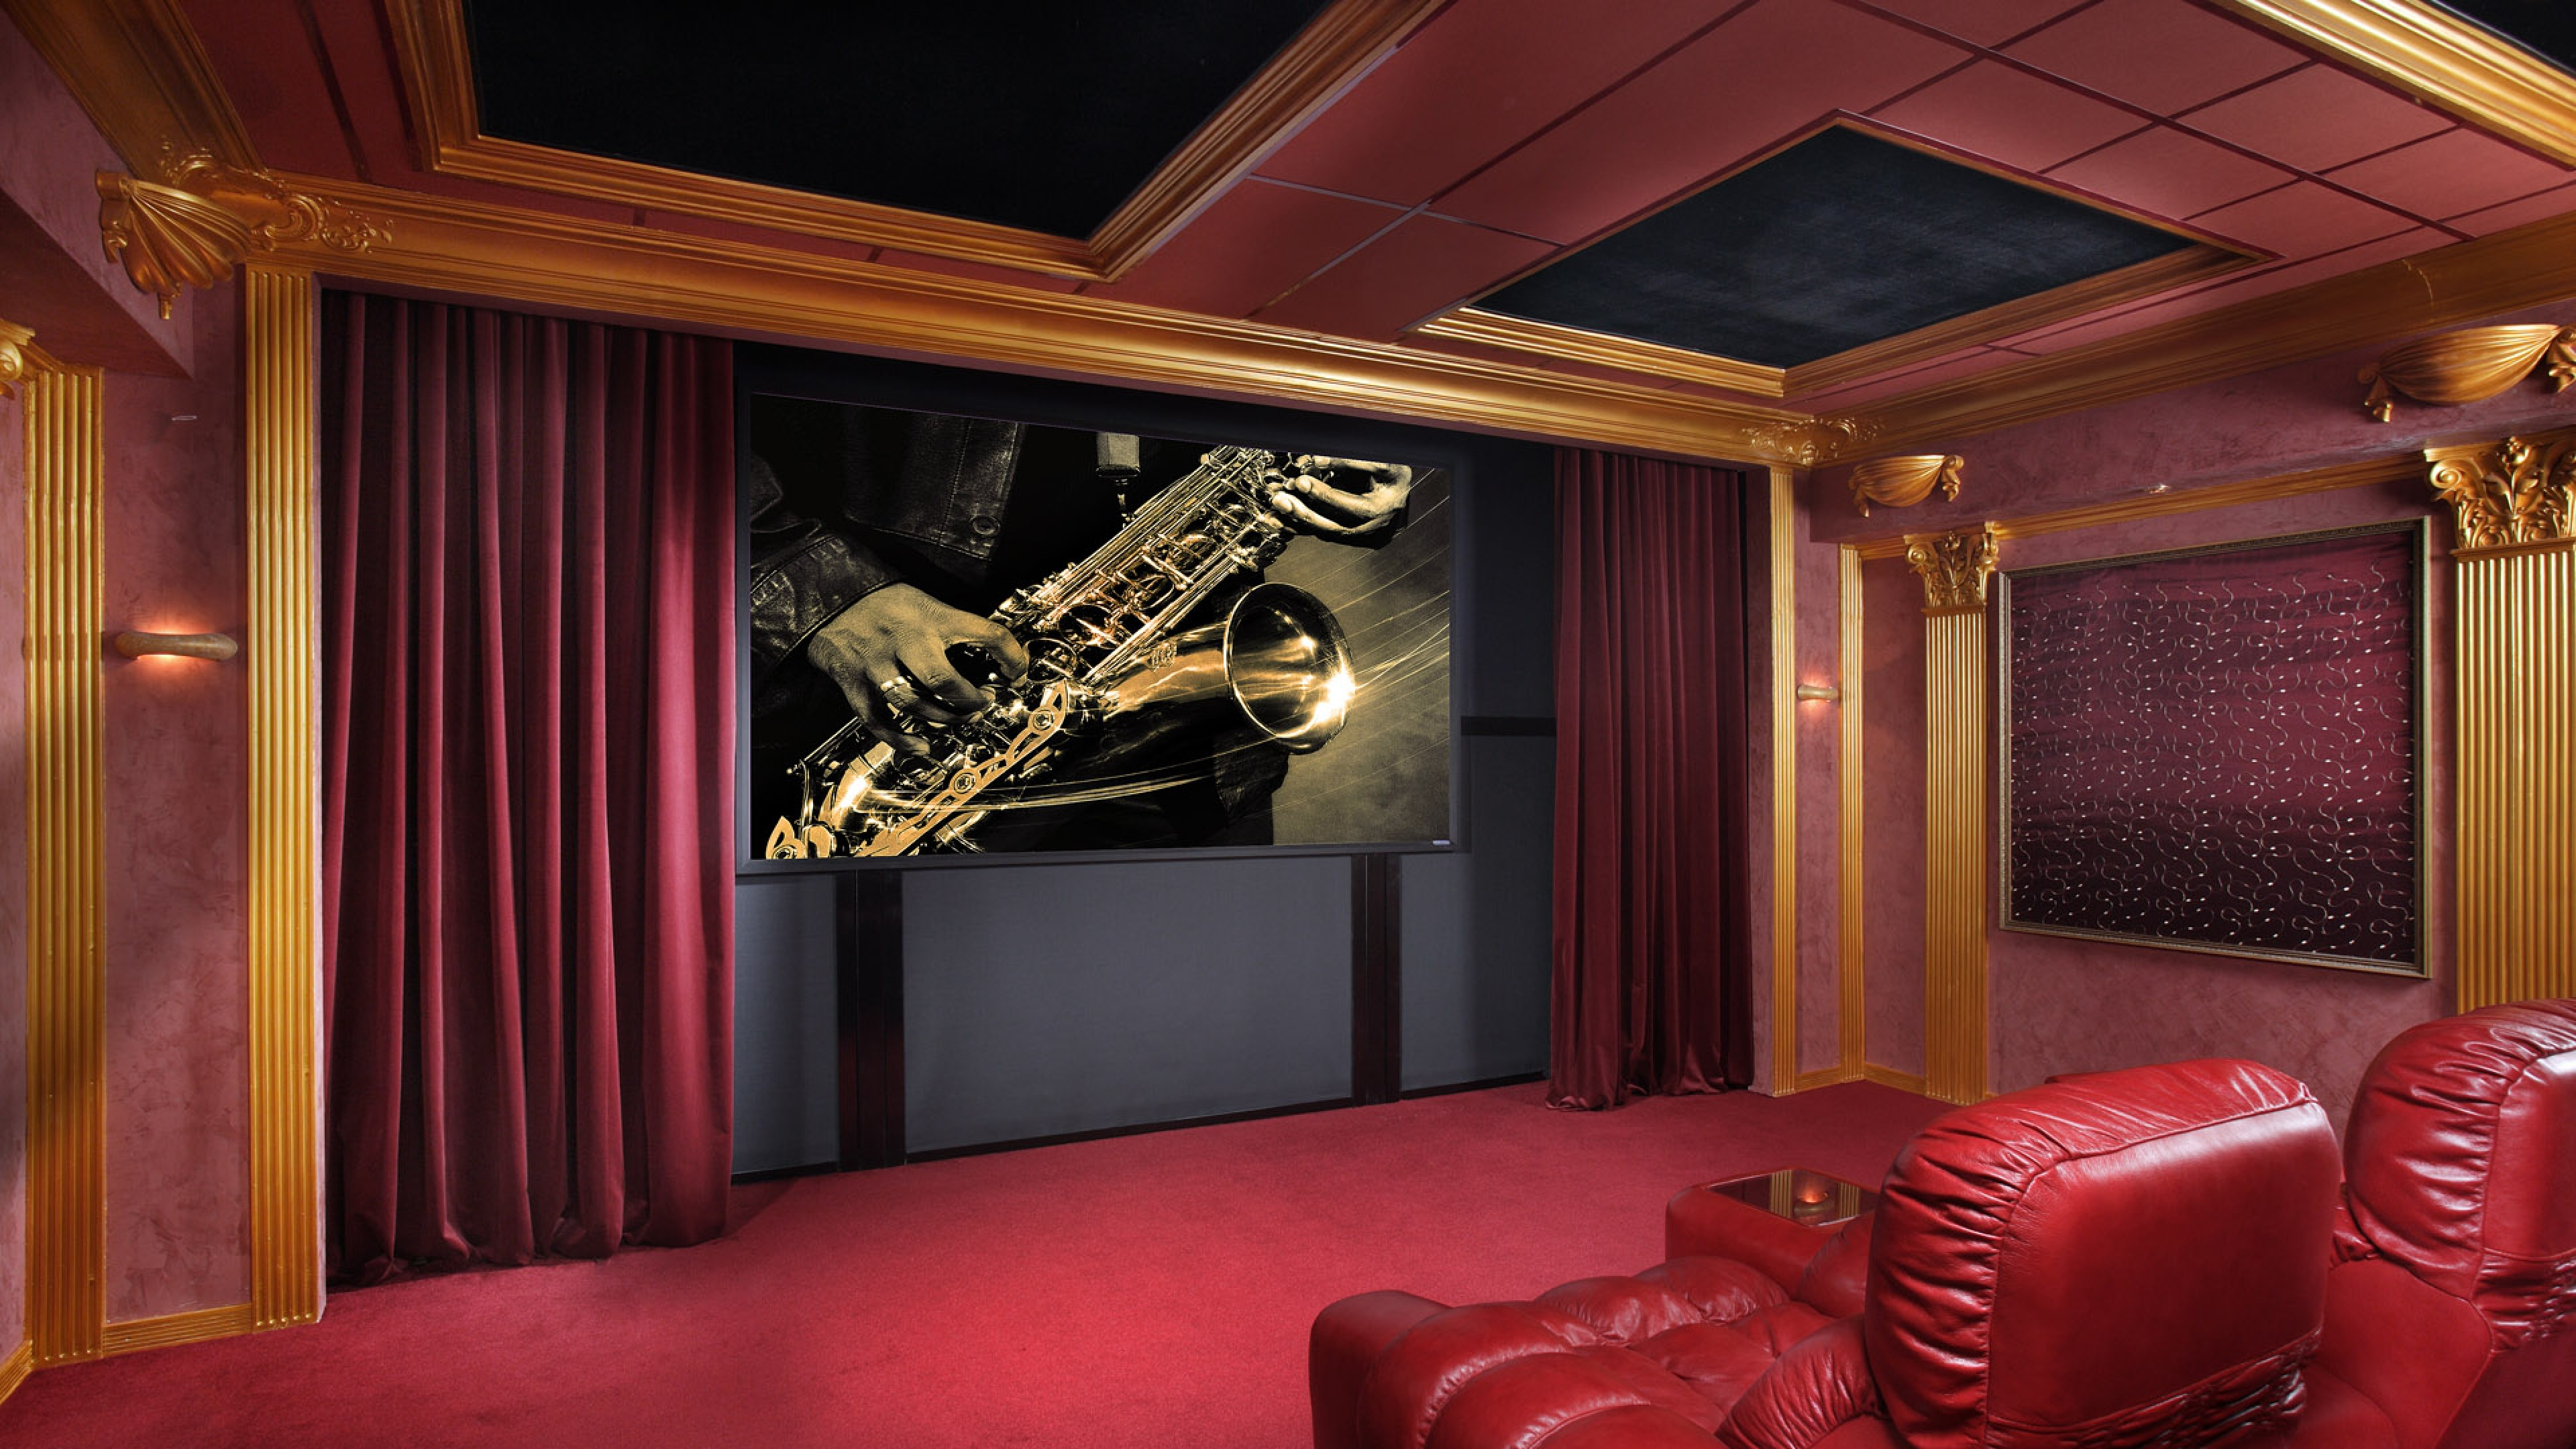 Theater Room Wallpaper Wallpapersafari